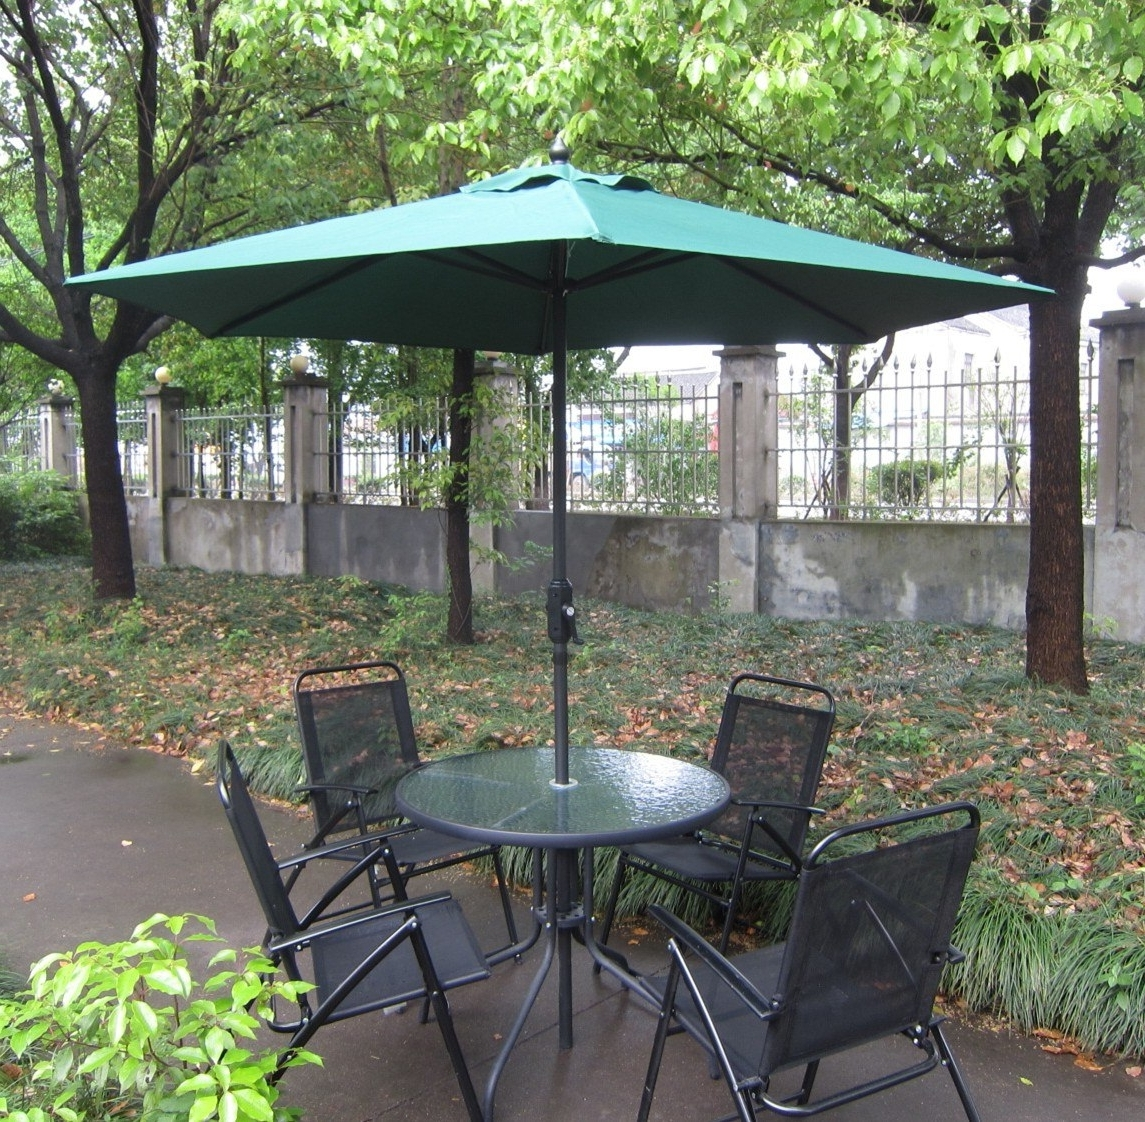 European Patio Umbrellas Regarding Well Known European Umbrella Outdoor Umbrellas Uv Sun Base Iron Pillar Holder (View 9 of 20)